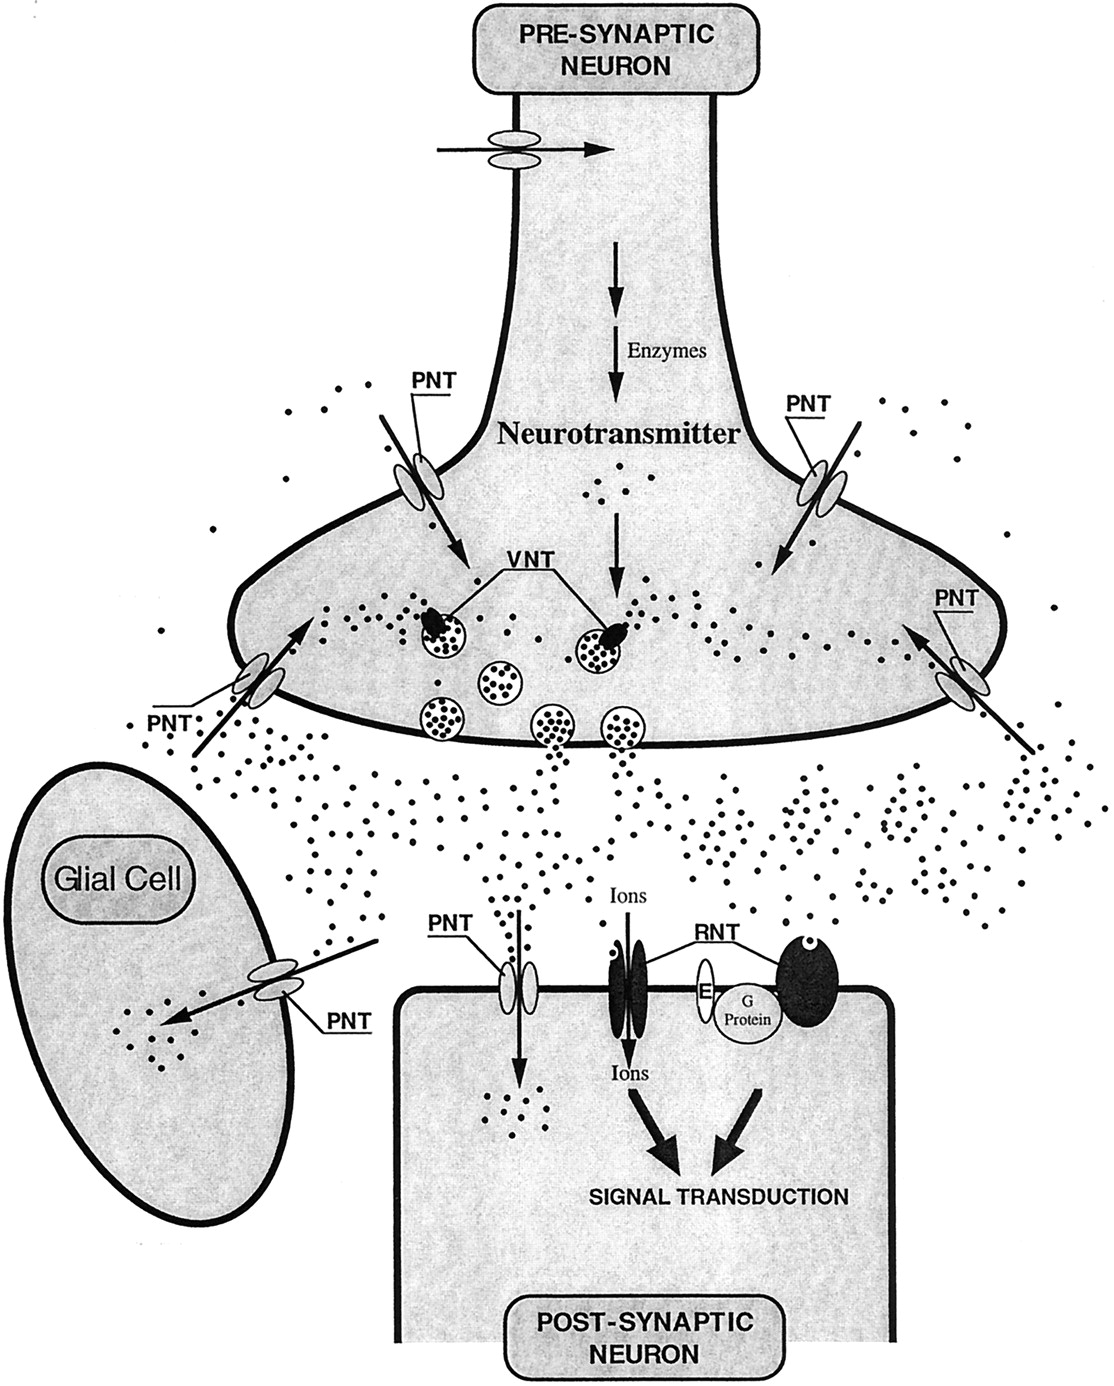 Neurotransmitter transporters in the central nervous system download figure ccuart Gallery